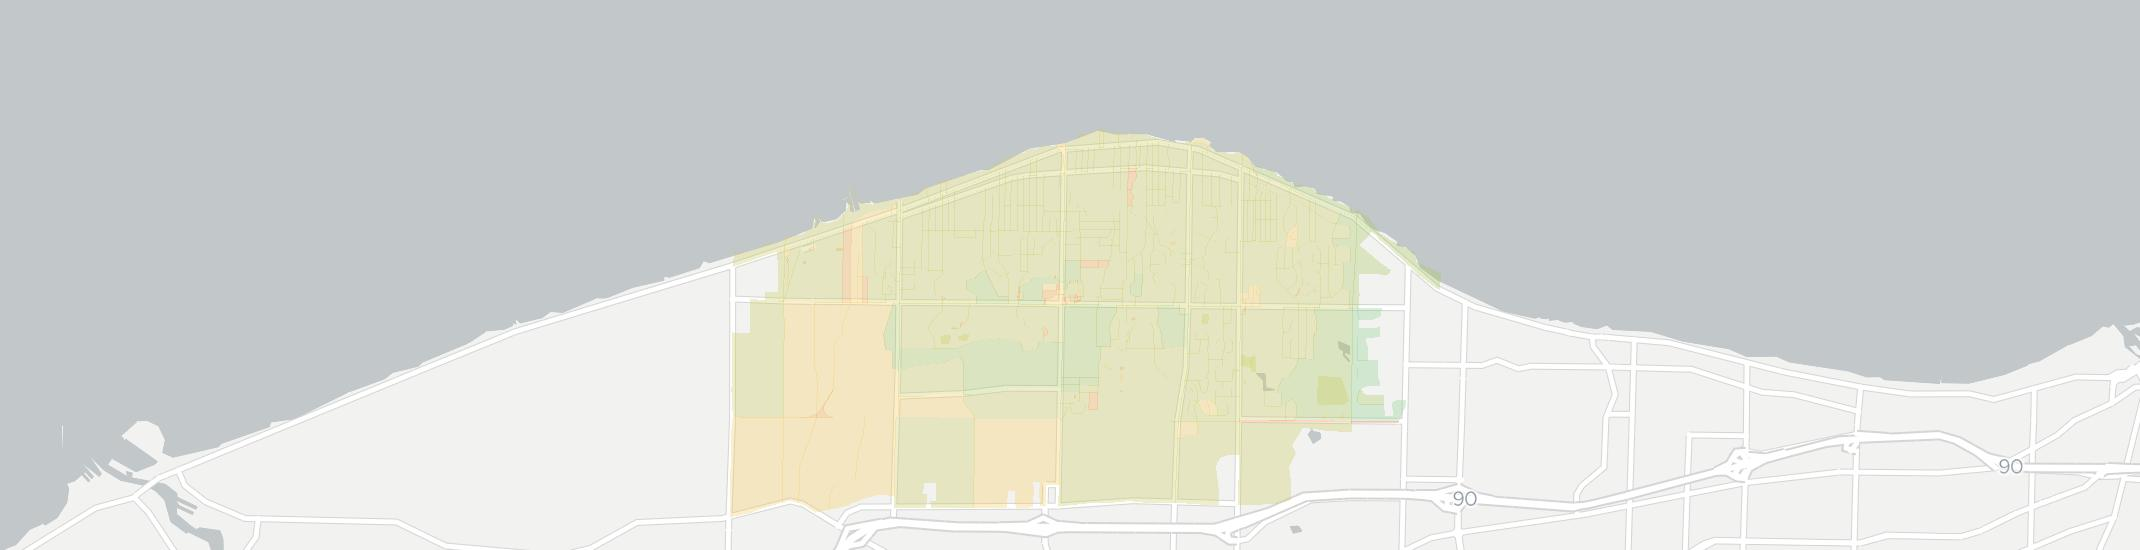 Avon Lake Internet Competition Map. Click for interactive map.